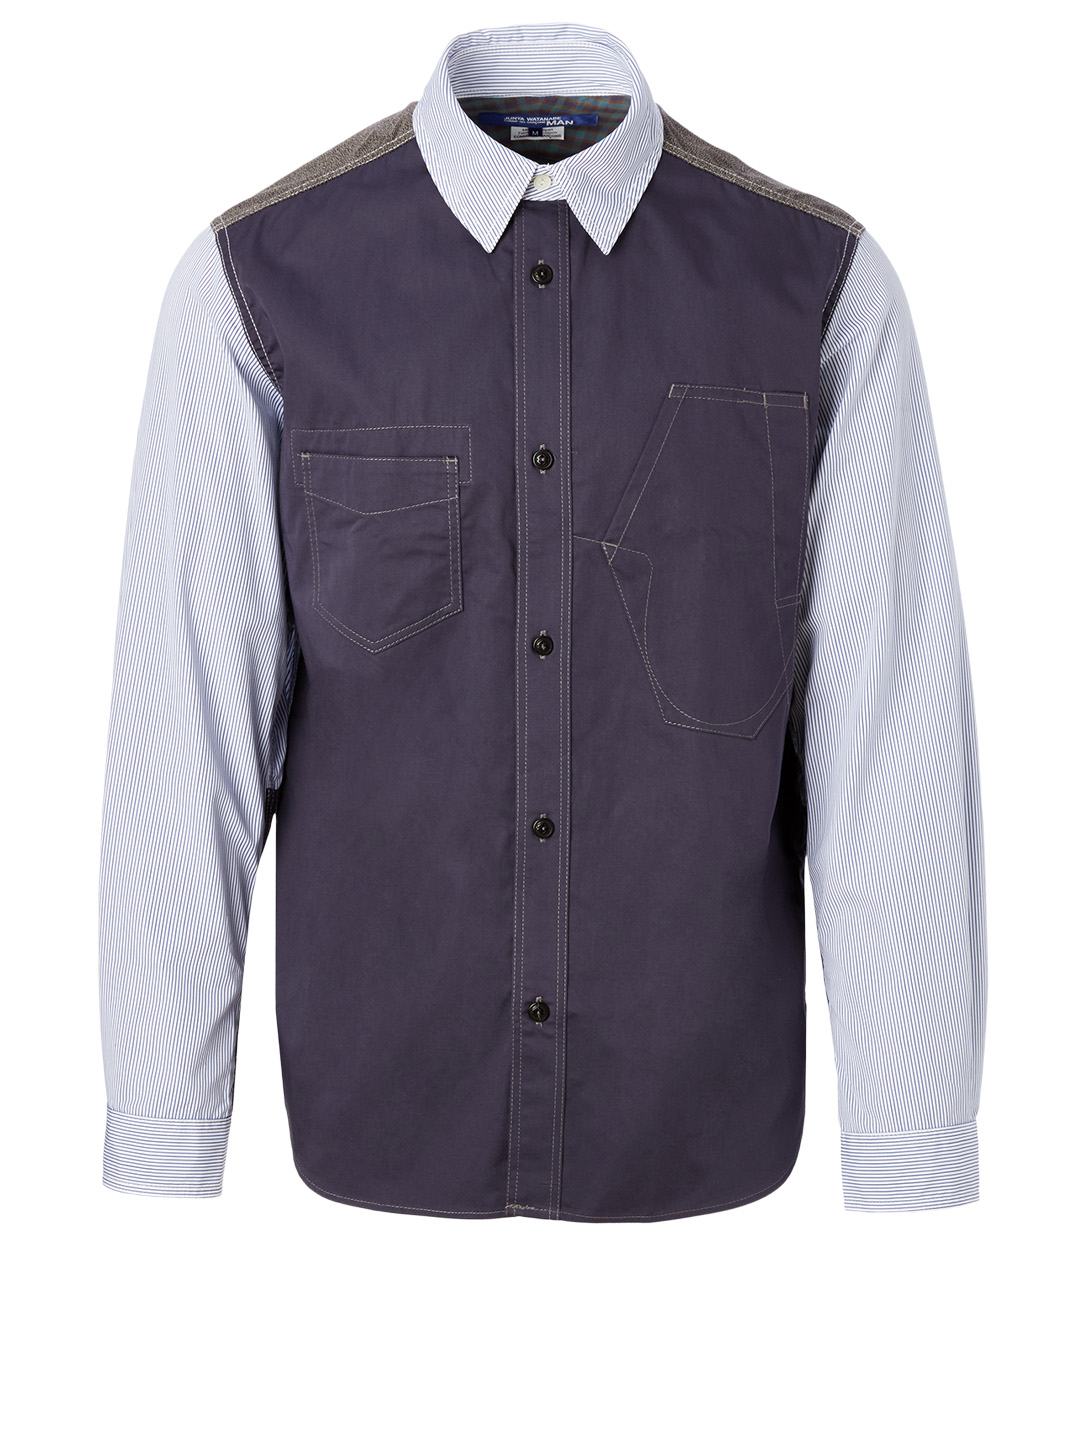 JUNYA WATANABE Cotton Shirt With Elbow Patch Men's Multi